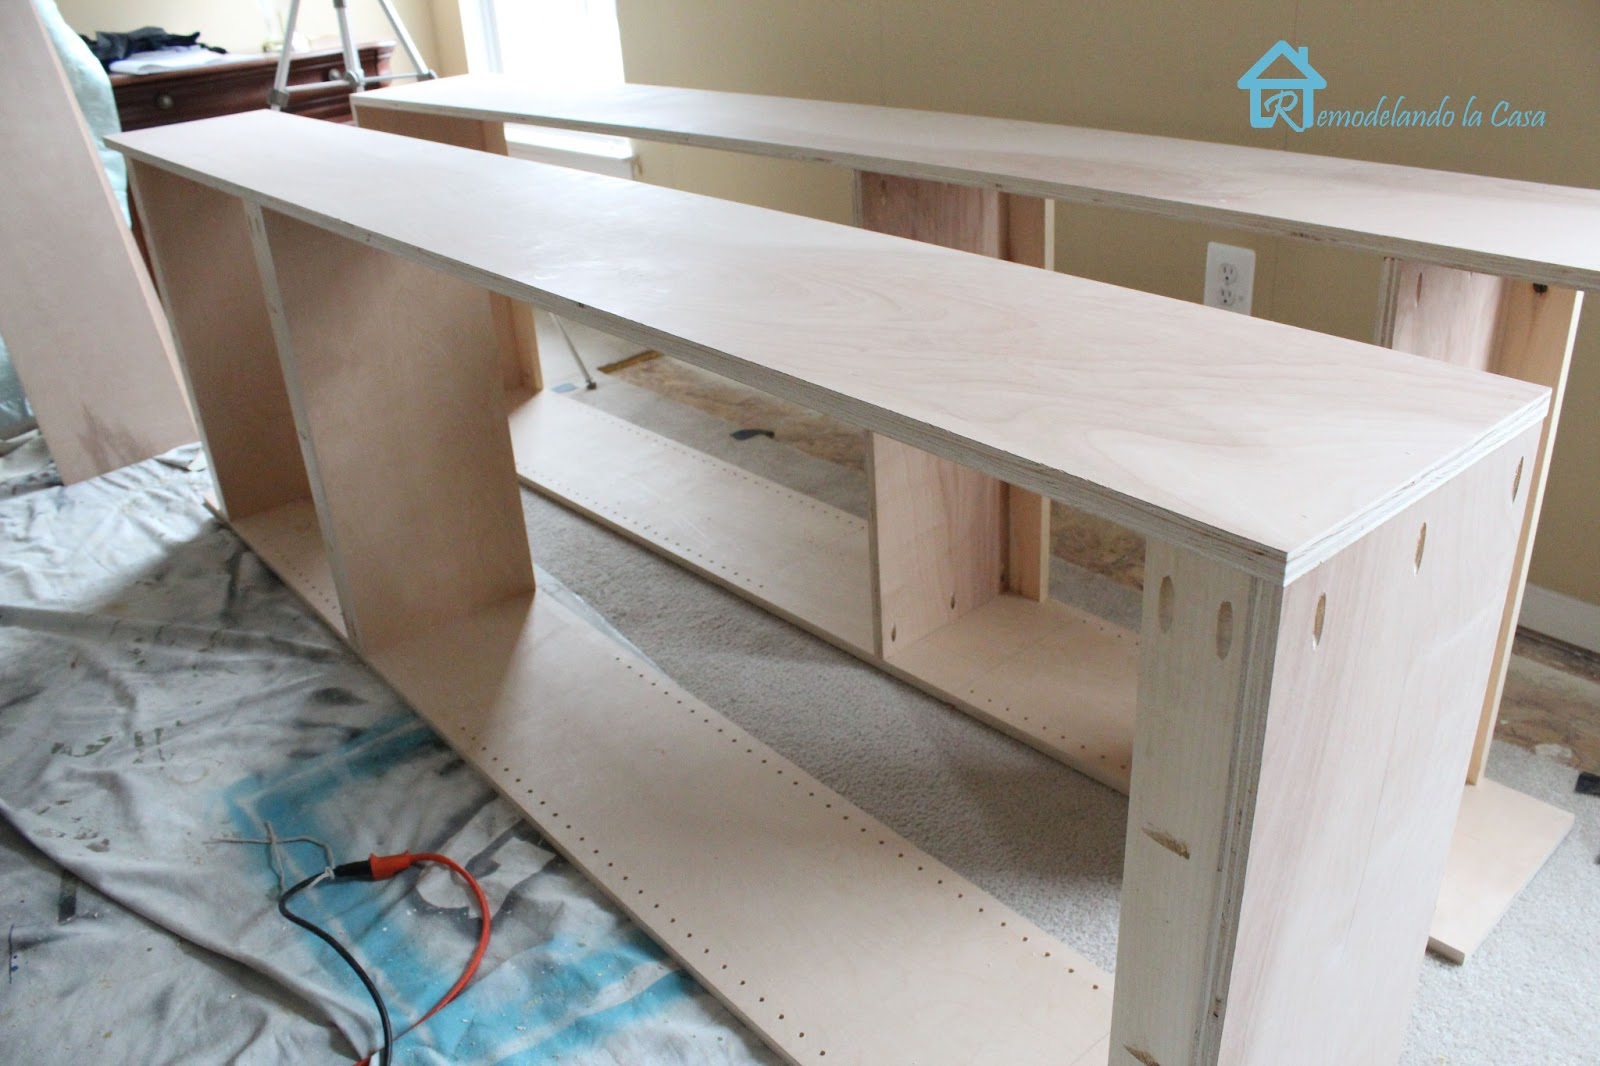 ... for whole sheets of plywood or MDF where I need multiple cuts I go to  the big stores,